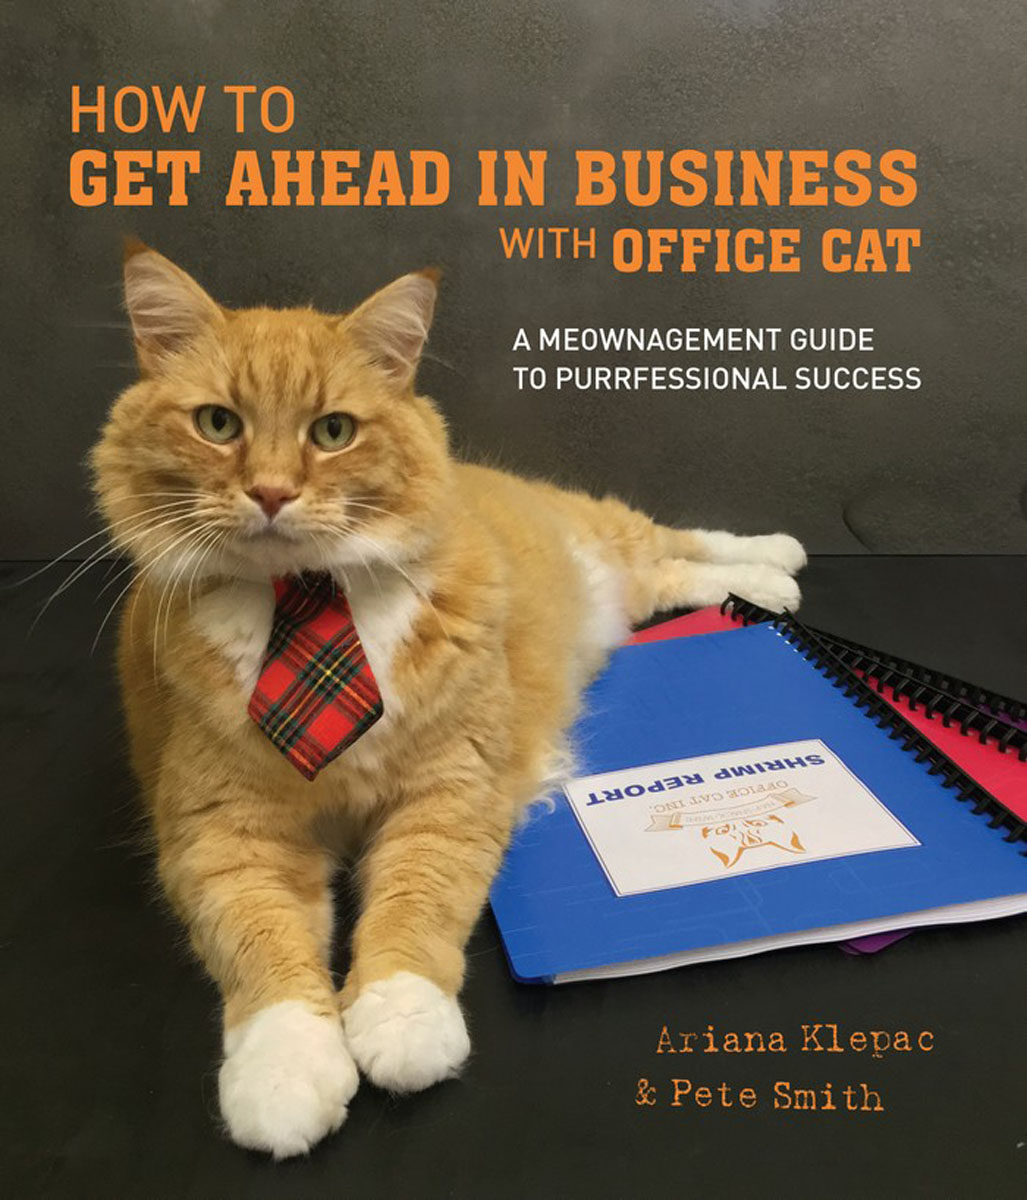 How to Get Ahead in Business with Office Cat frank buytendijk dealing with dilemmas where business analytics fall short